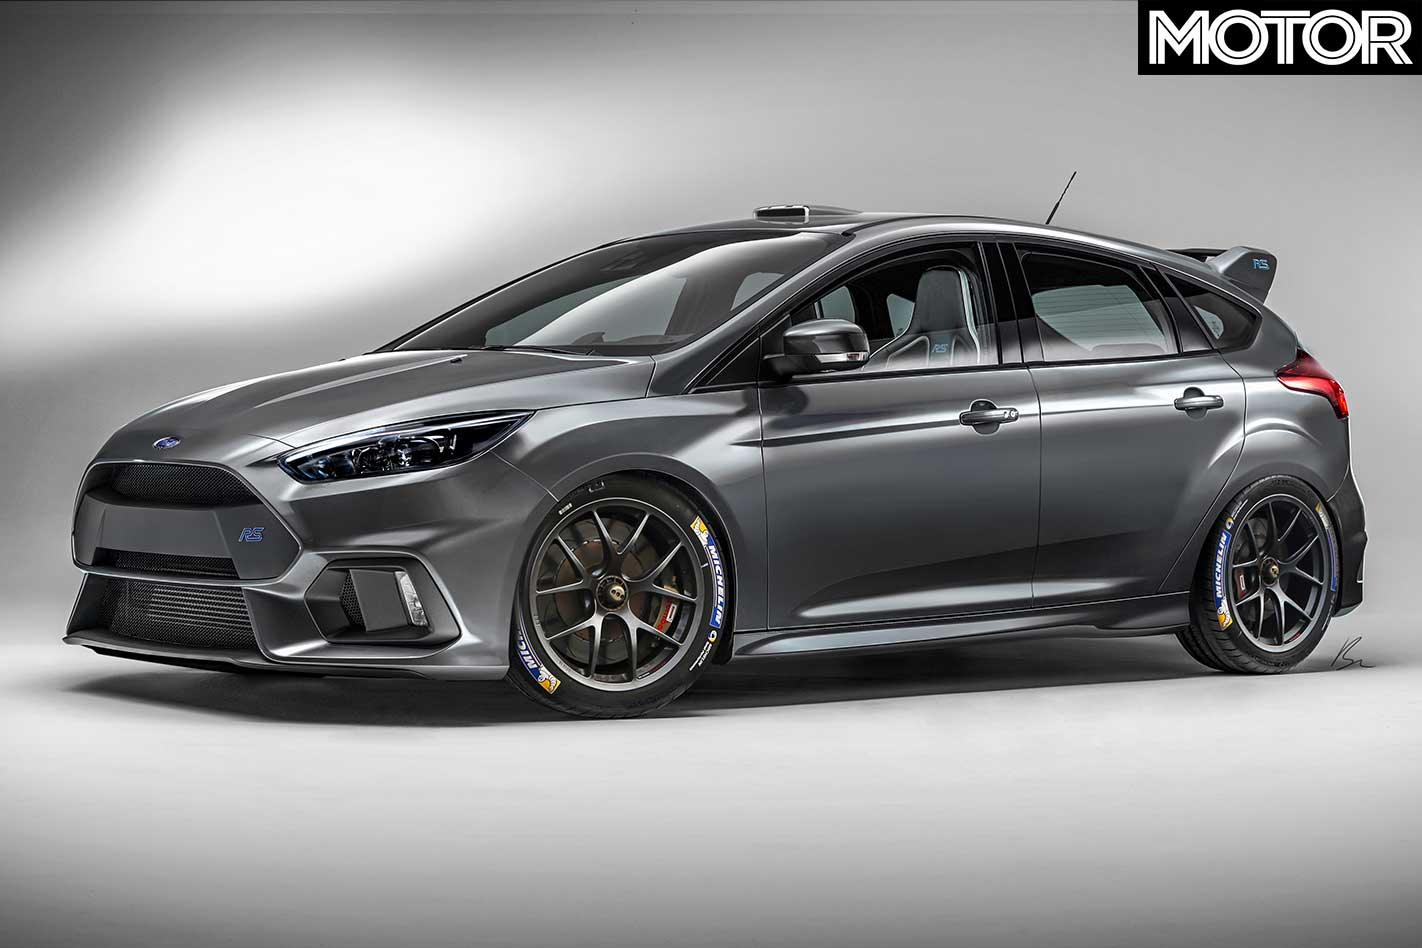 2020 Ford Focus RS preview